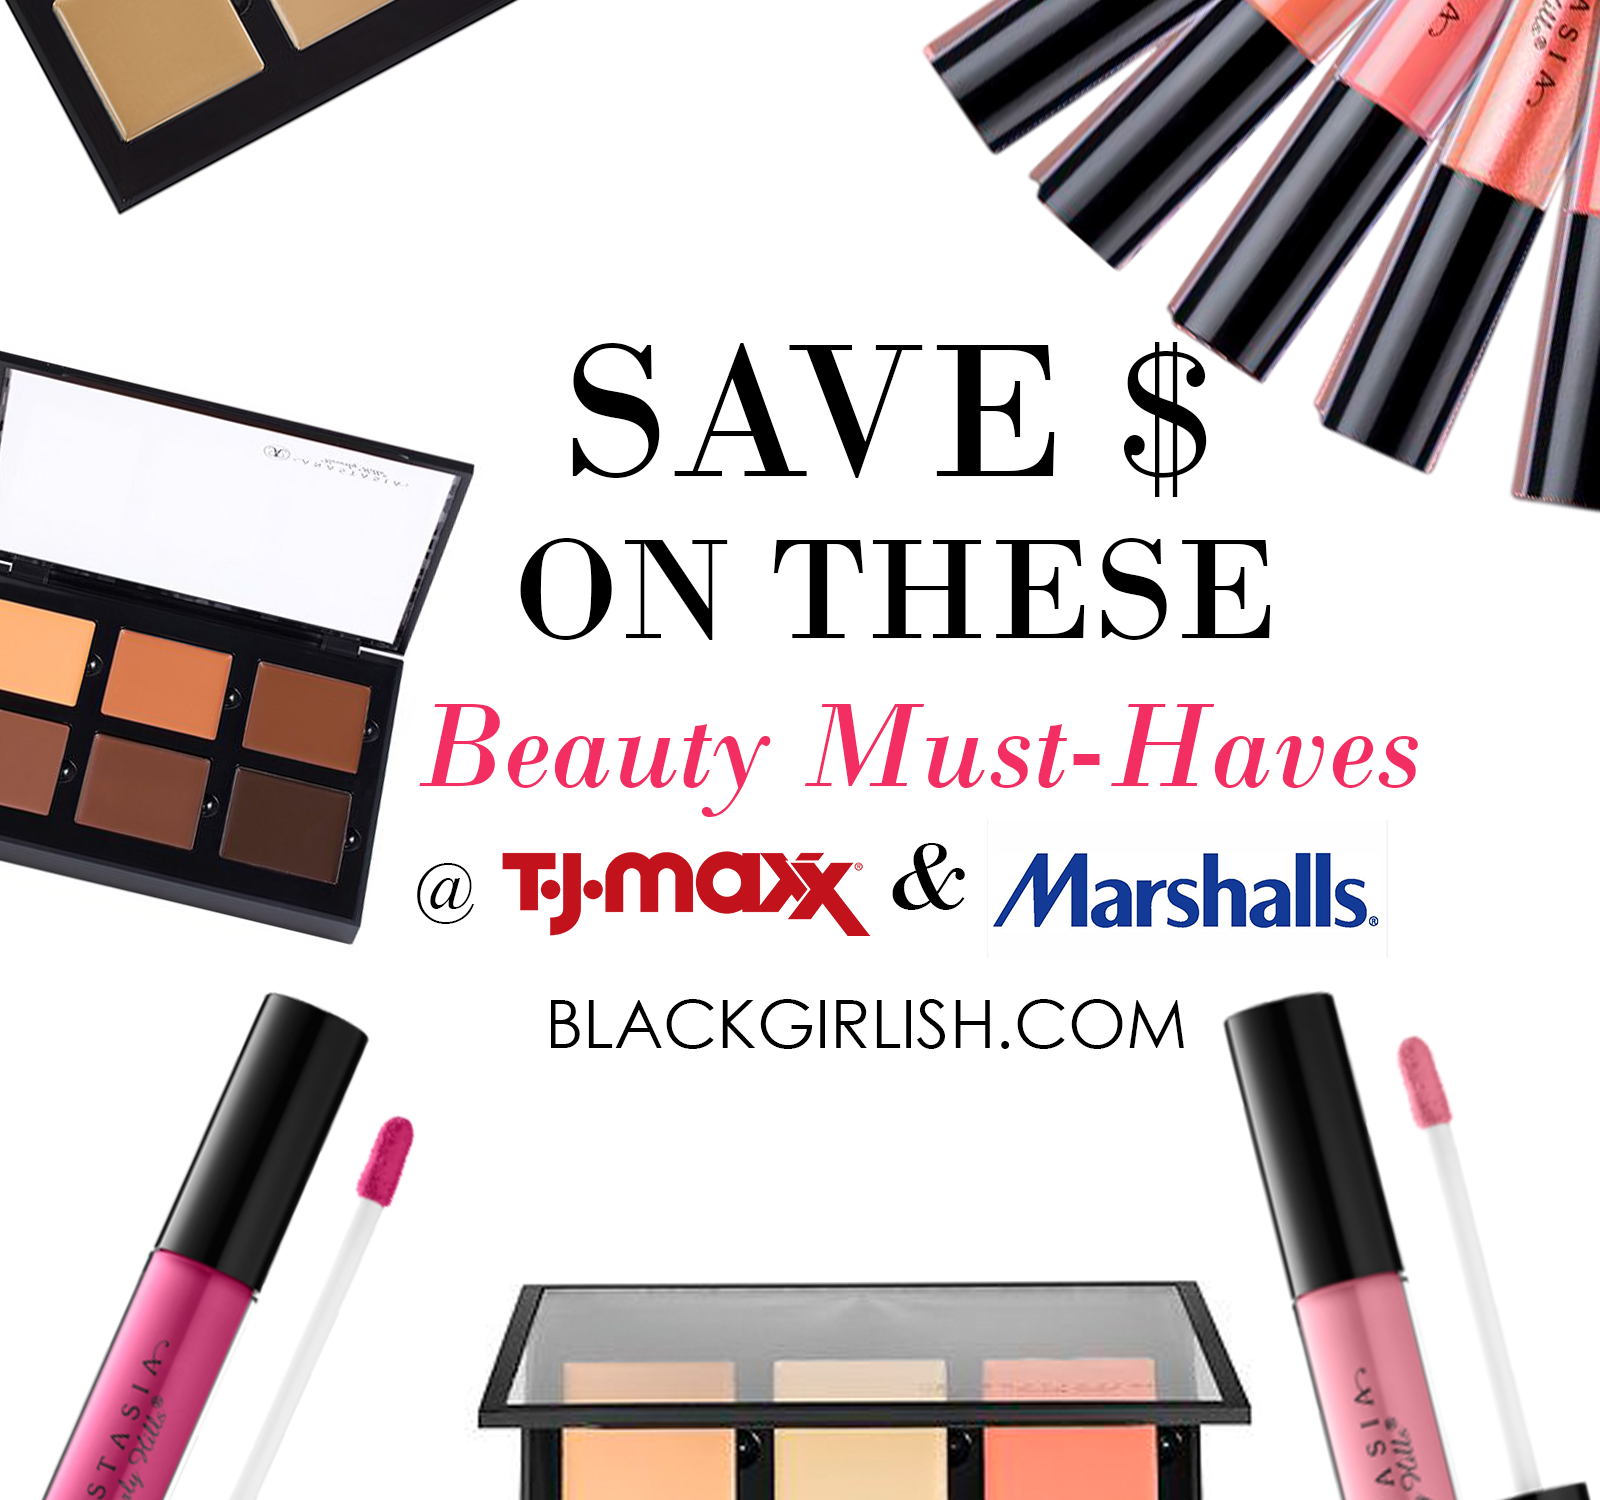 Save on These Beauty Must-Haves at TJmaxx and Marshalls - makeup - anastasia beverly hills - contour palette - lip gloss - beauty blog